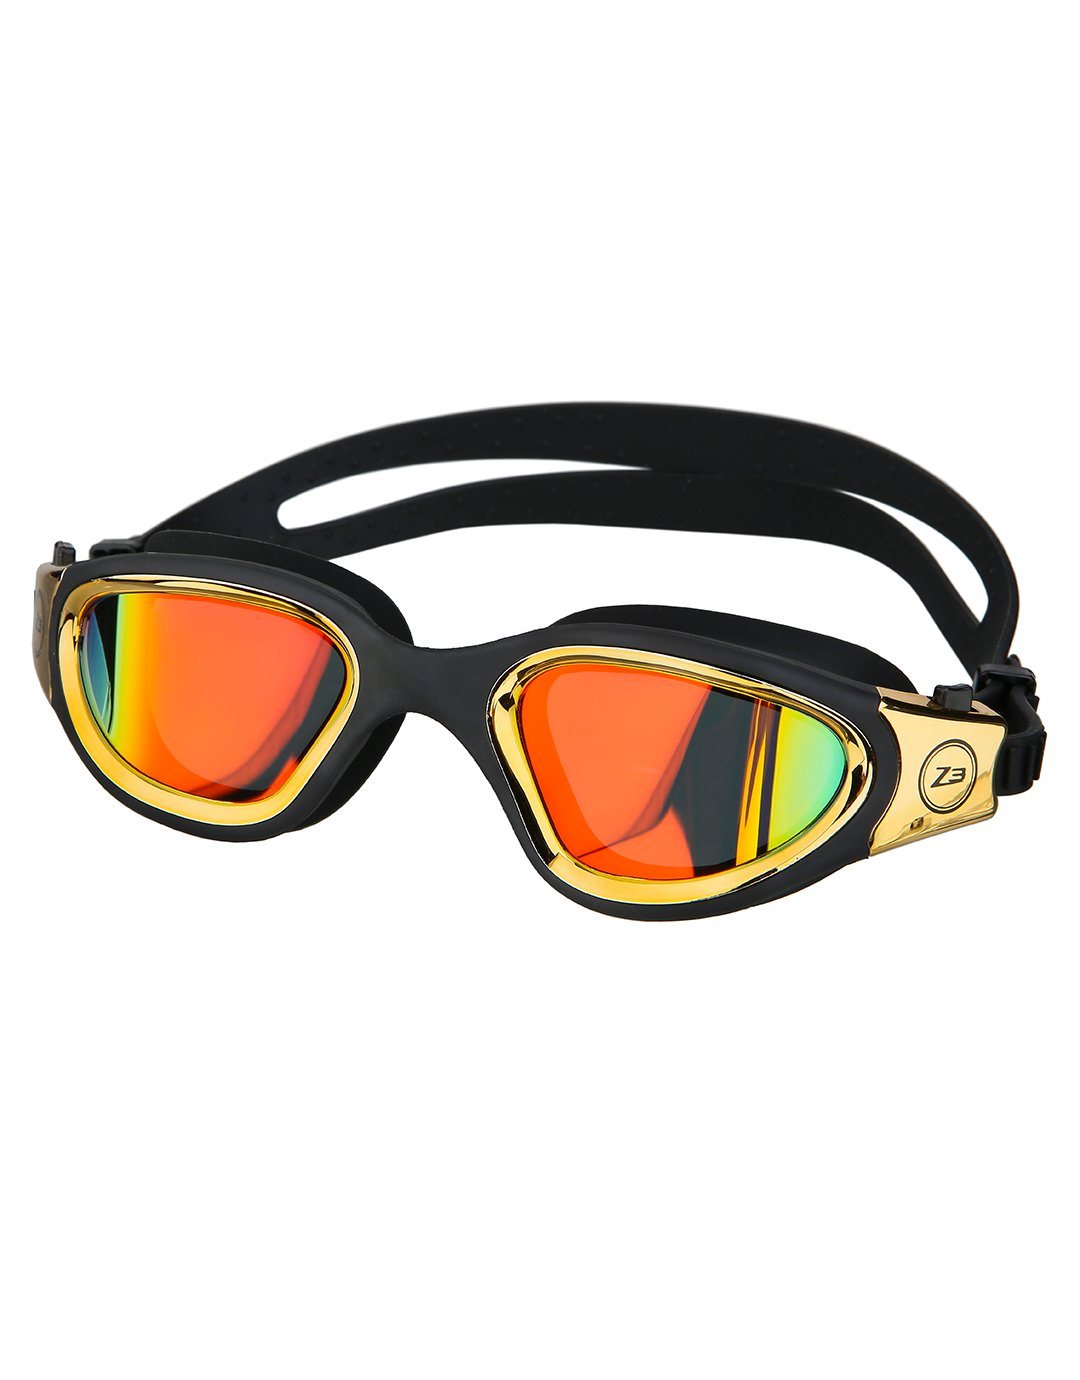 Vapour Goggles - Revo Black and Gold